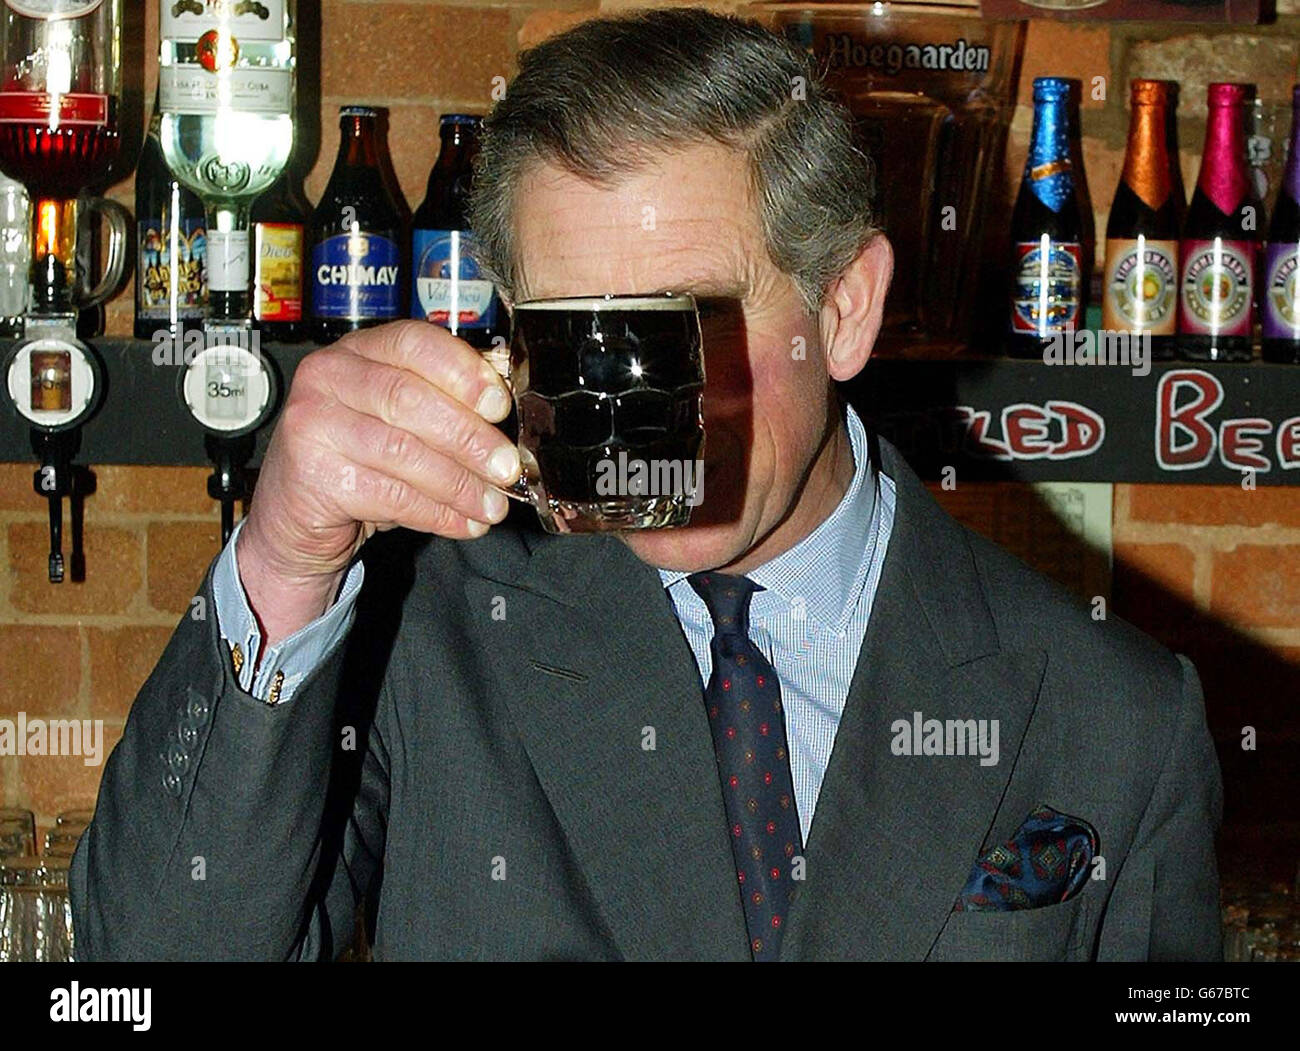 Prince of Wales Visits the Grainstore Brewery - Stock Image